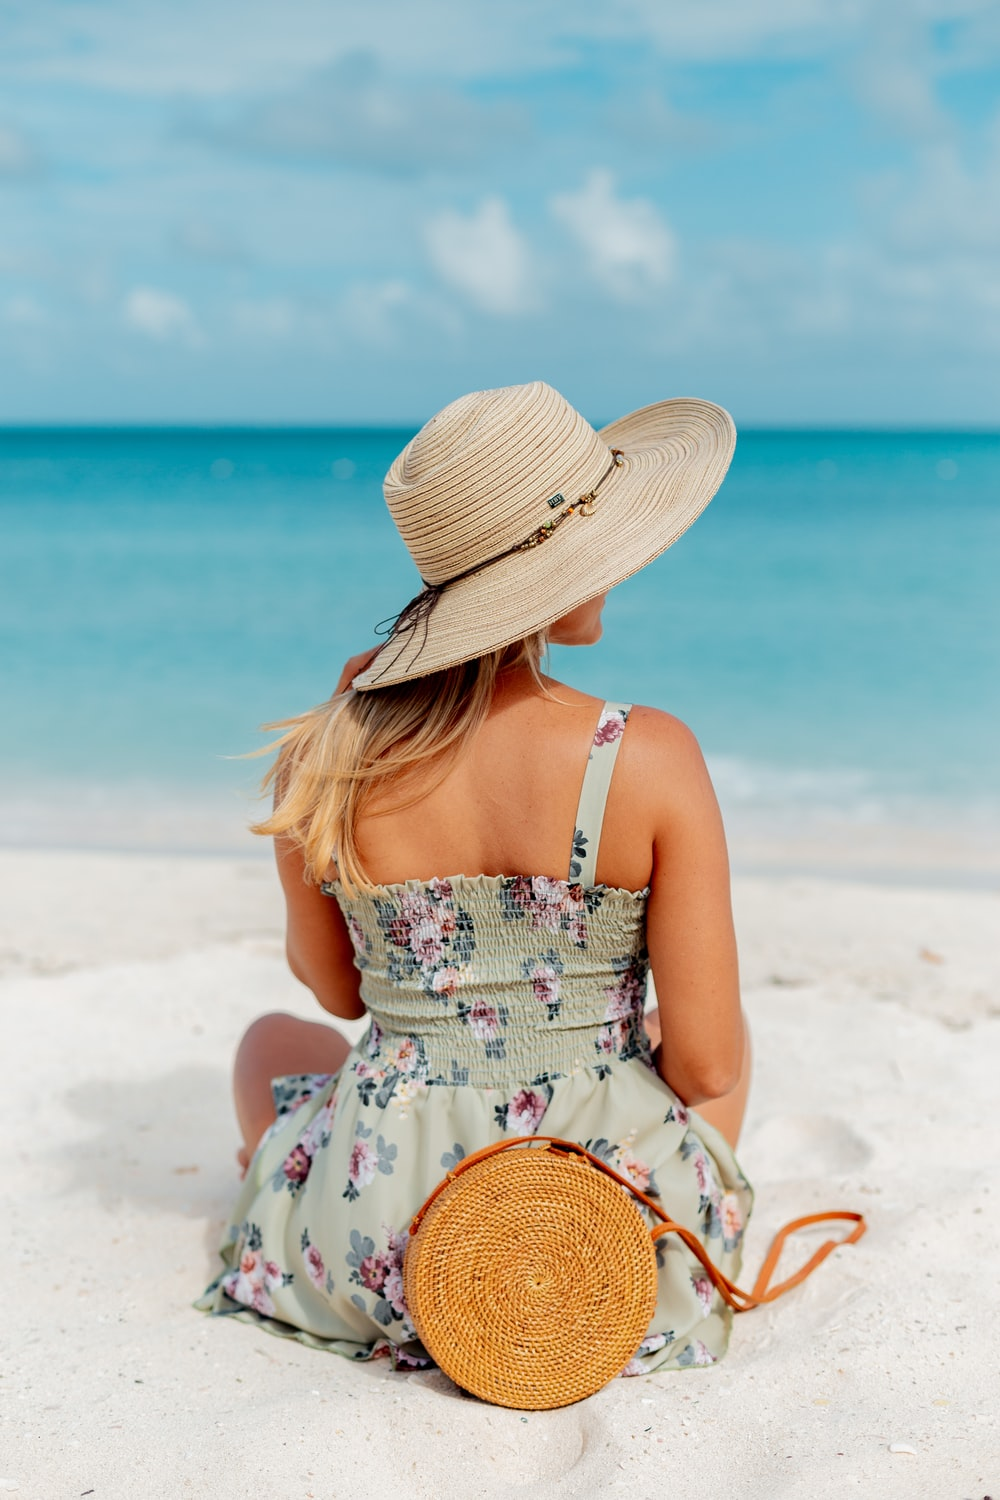 woman in white and pink floral spaghetti strap dress wearing brown sun hat sitting on white